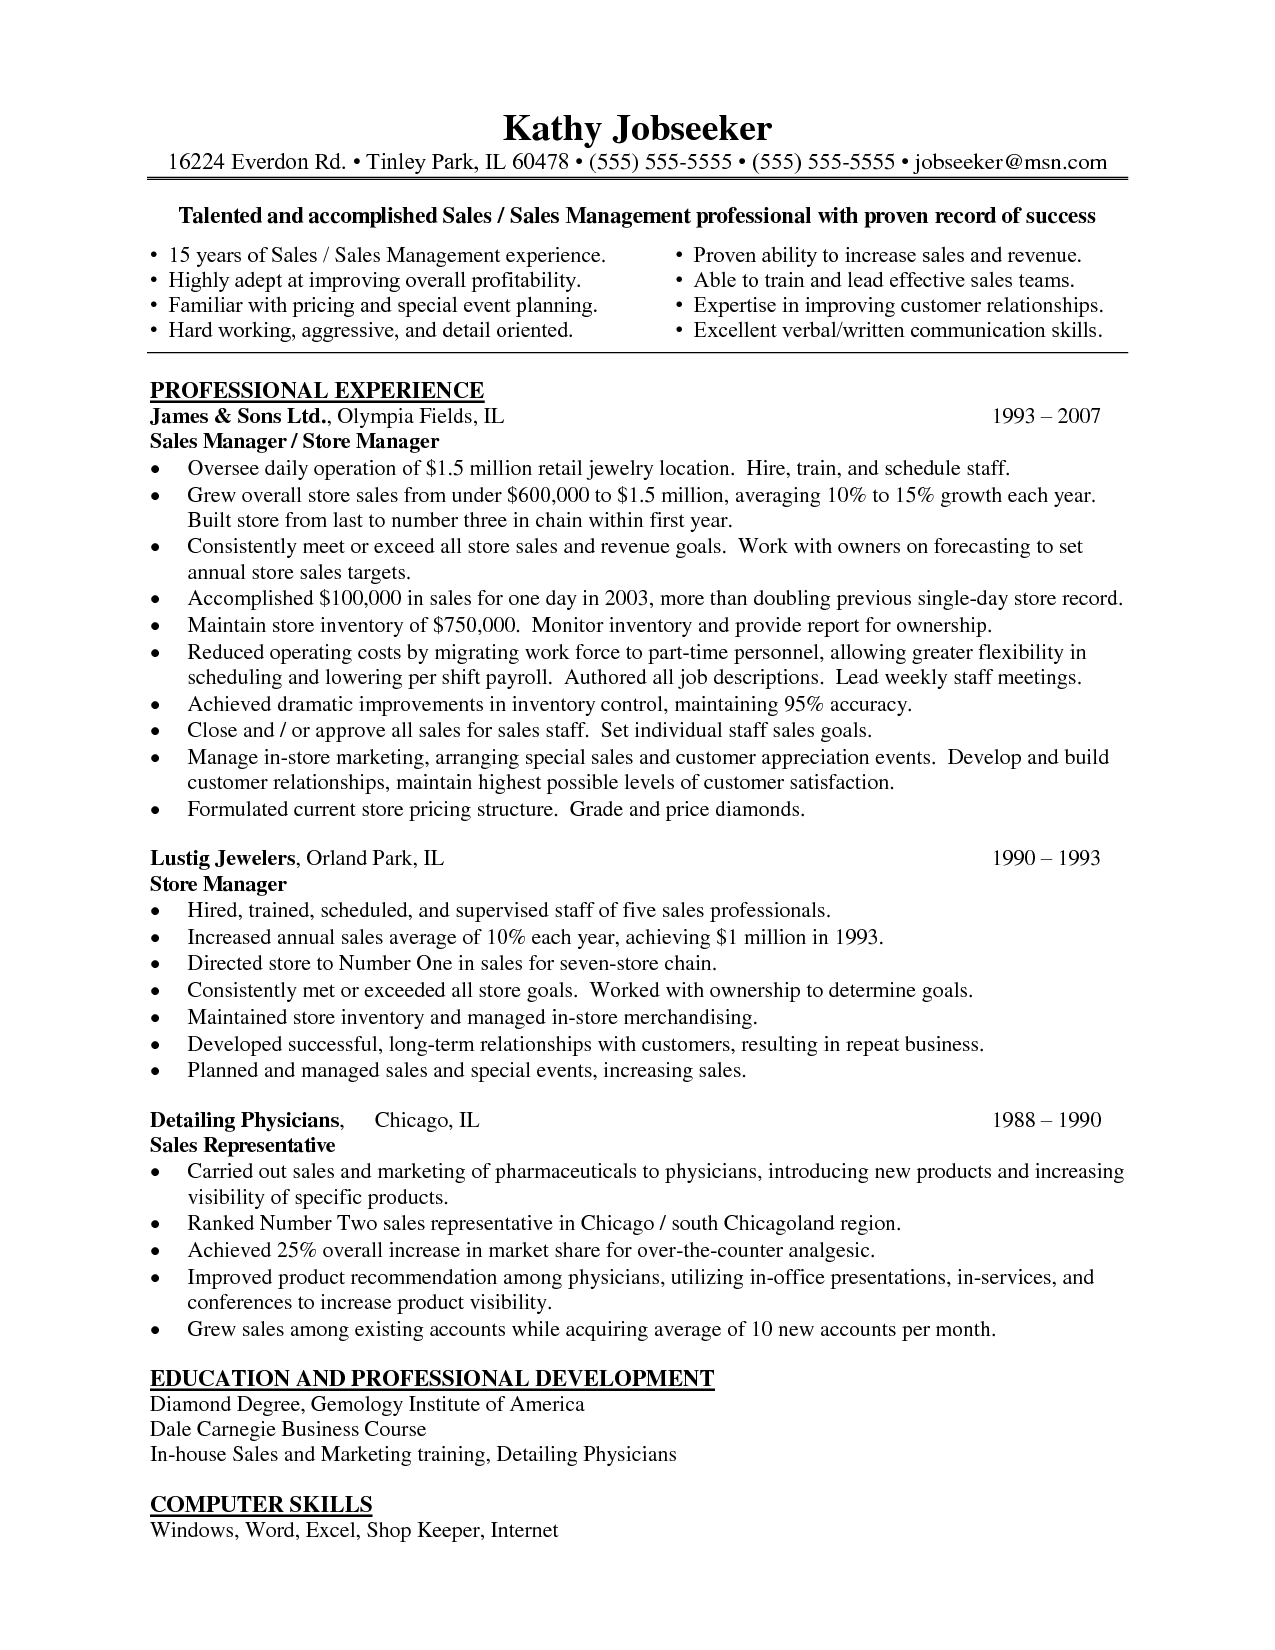 Resume examples, Retail and Retail stores on Pinterest